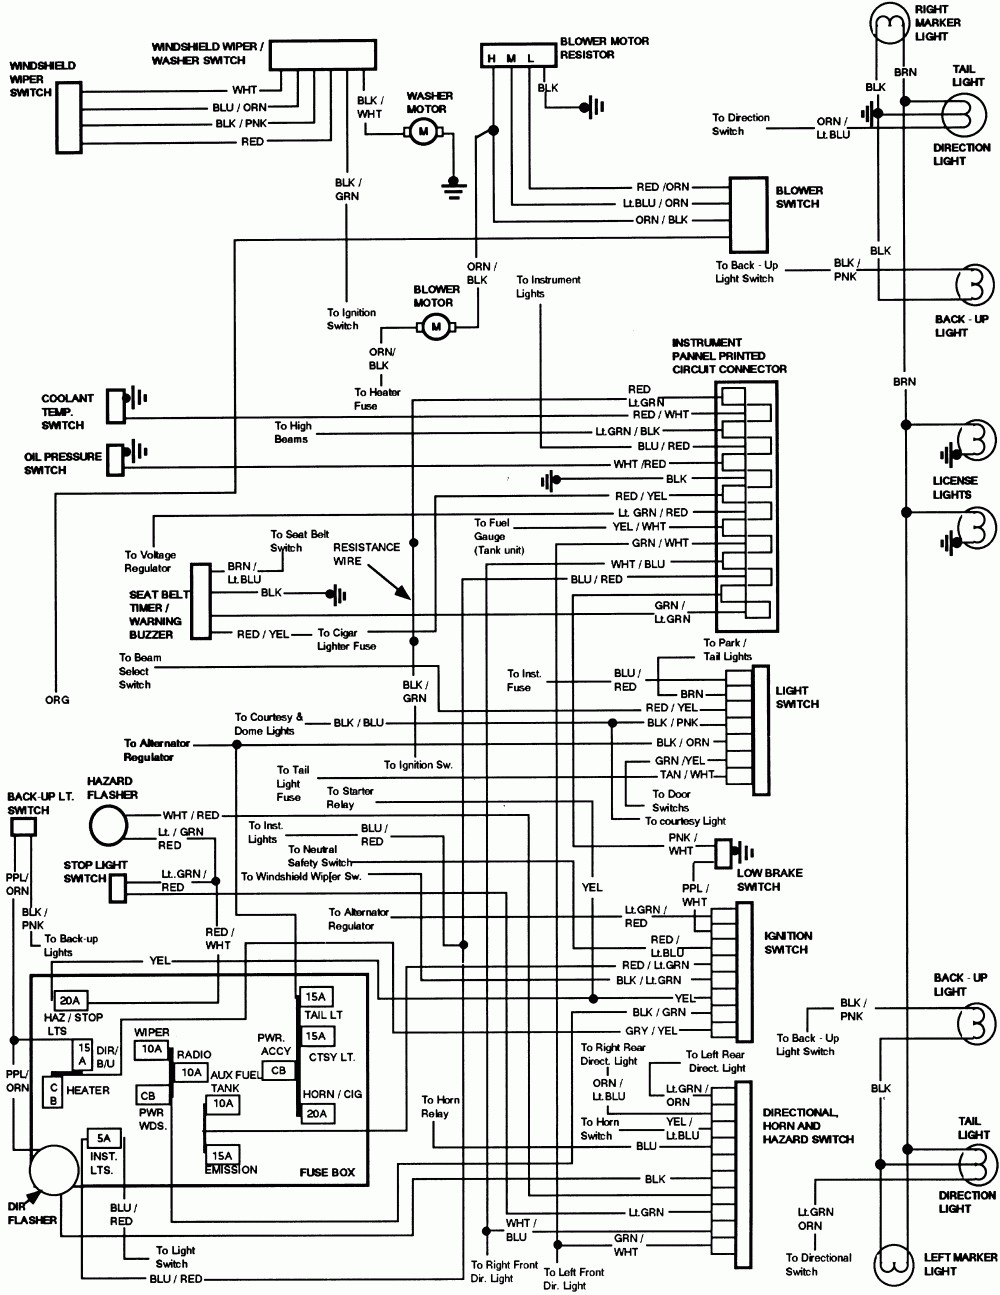 f150 ke diagram free download wiring diagram schematic wire center u2022 rh abetter pw